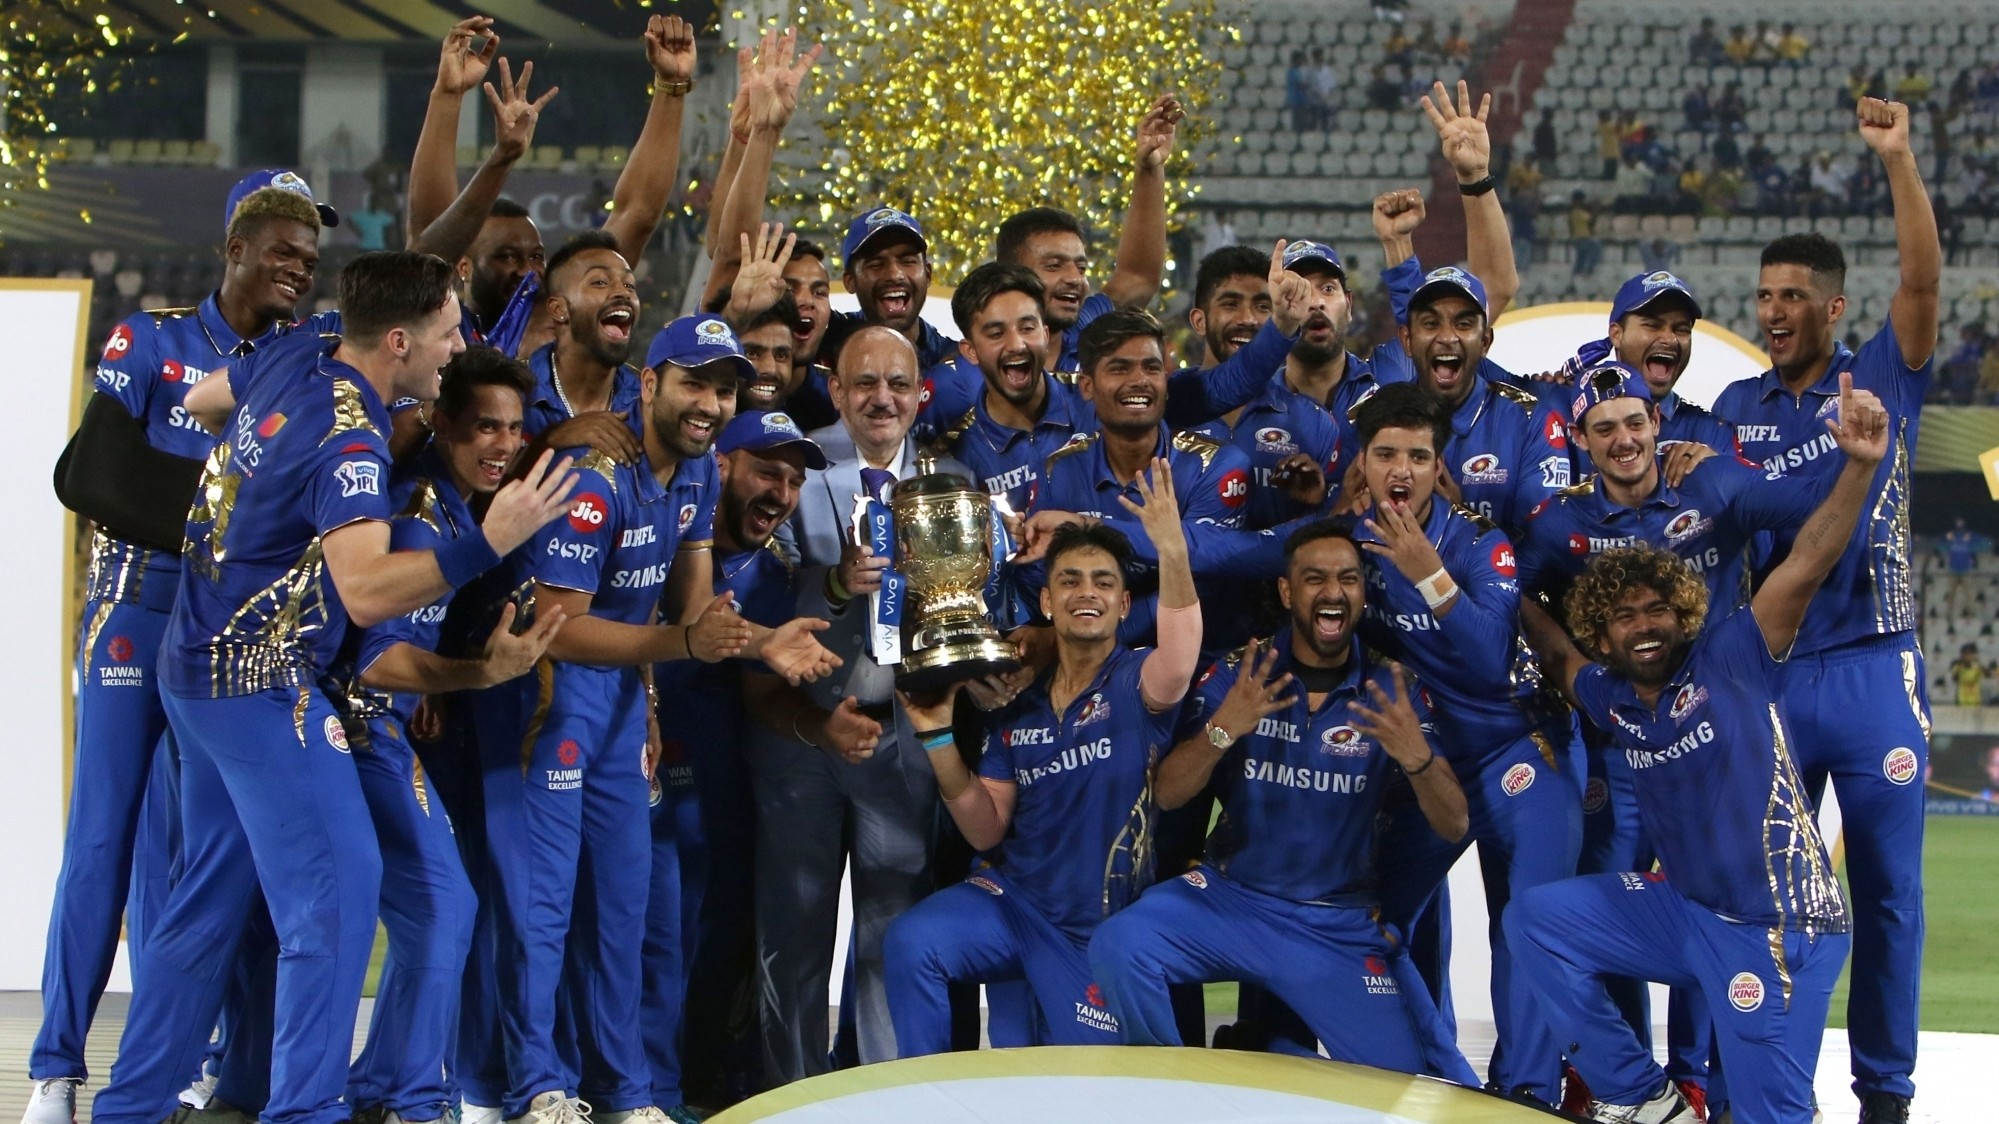 IPL 2020: MI cricketers to go through five rounds of COVID-19 tests before taking flight to UAE